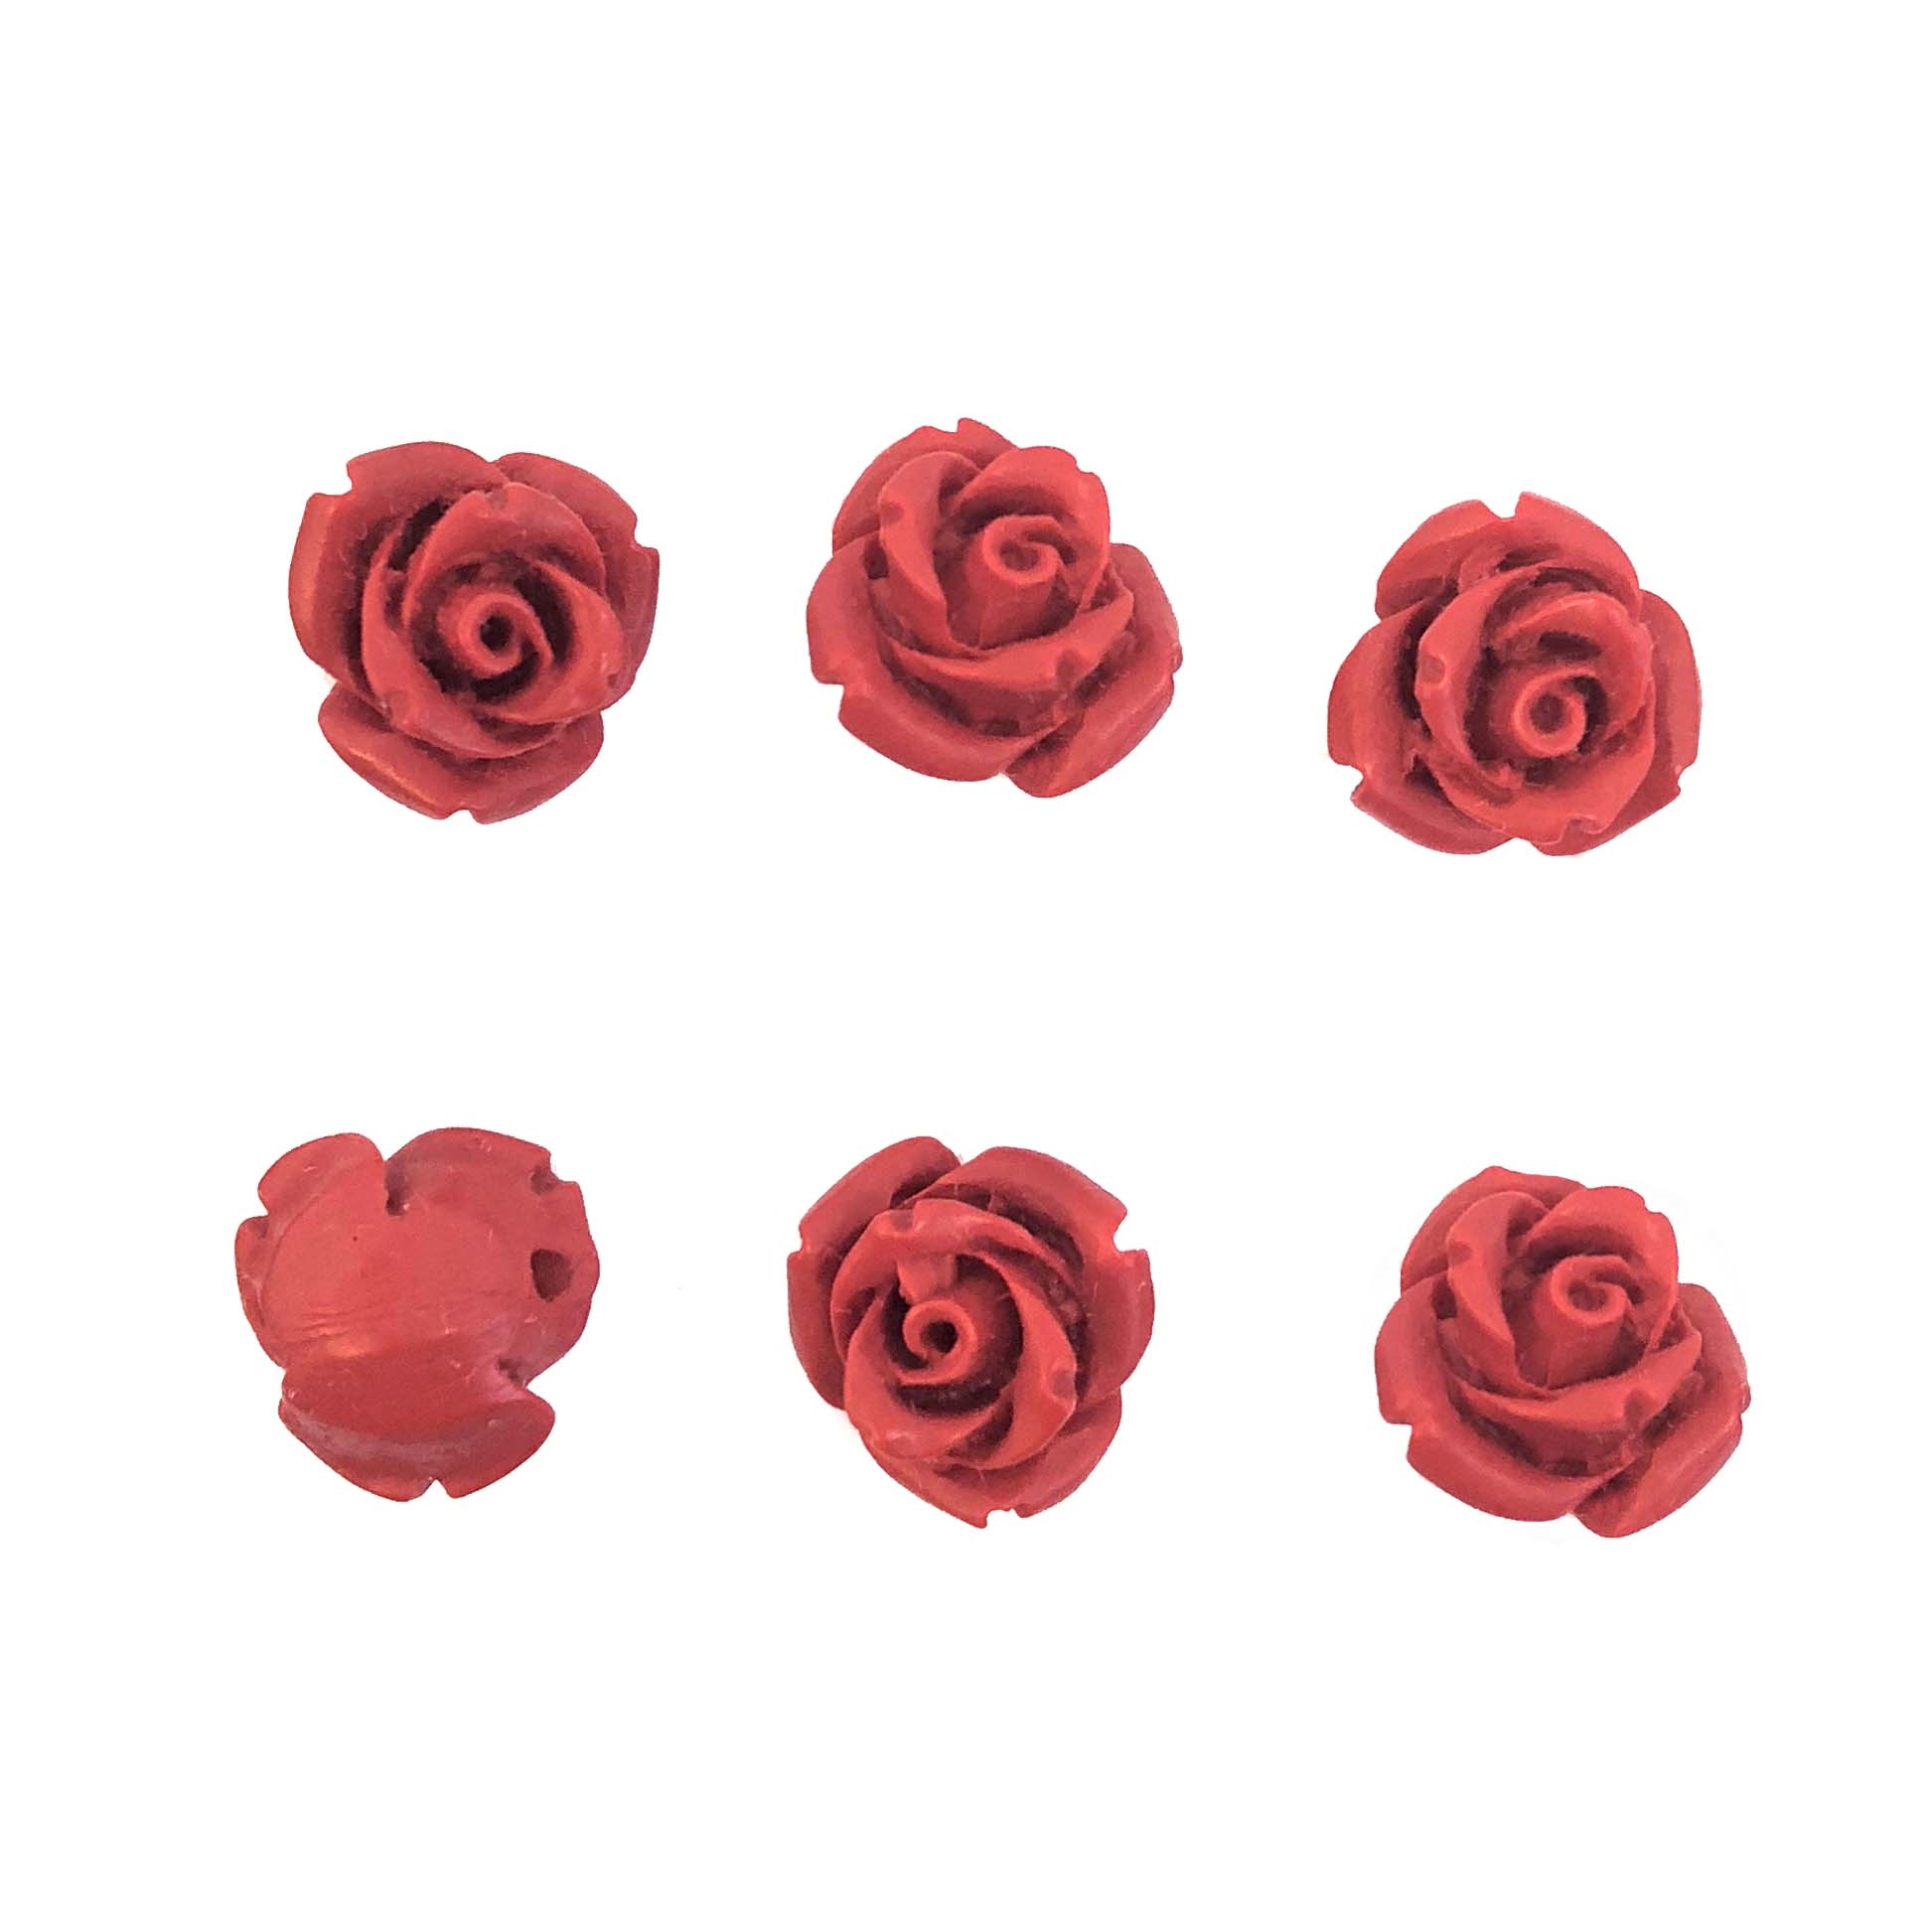 rose beads, carved cinnabar, 08372, red, red rose beads, 10mm rose beads, 10mm, cinnabar, B'sue Boutiques, jewelry supplies, beads, red beads, roses,